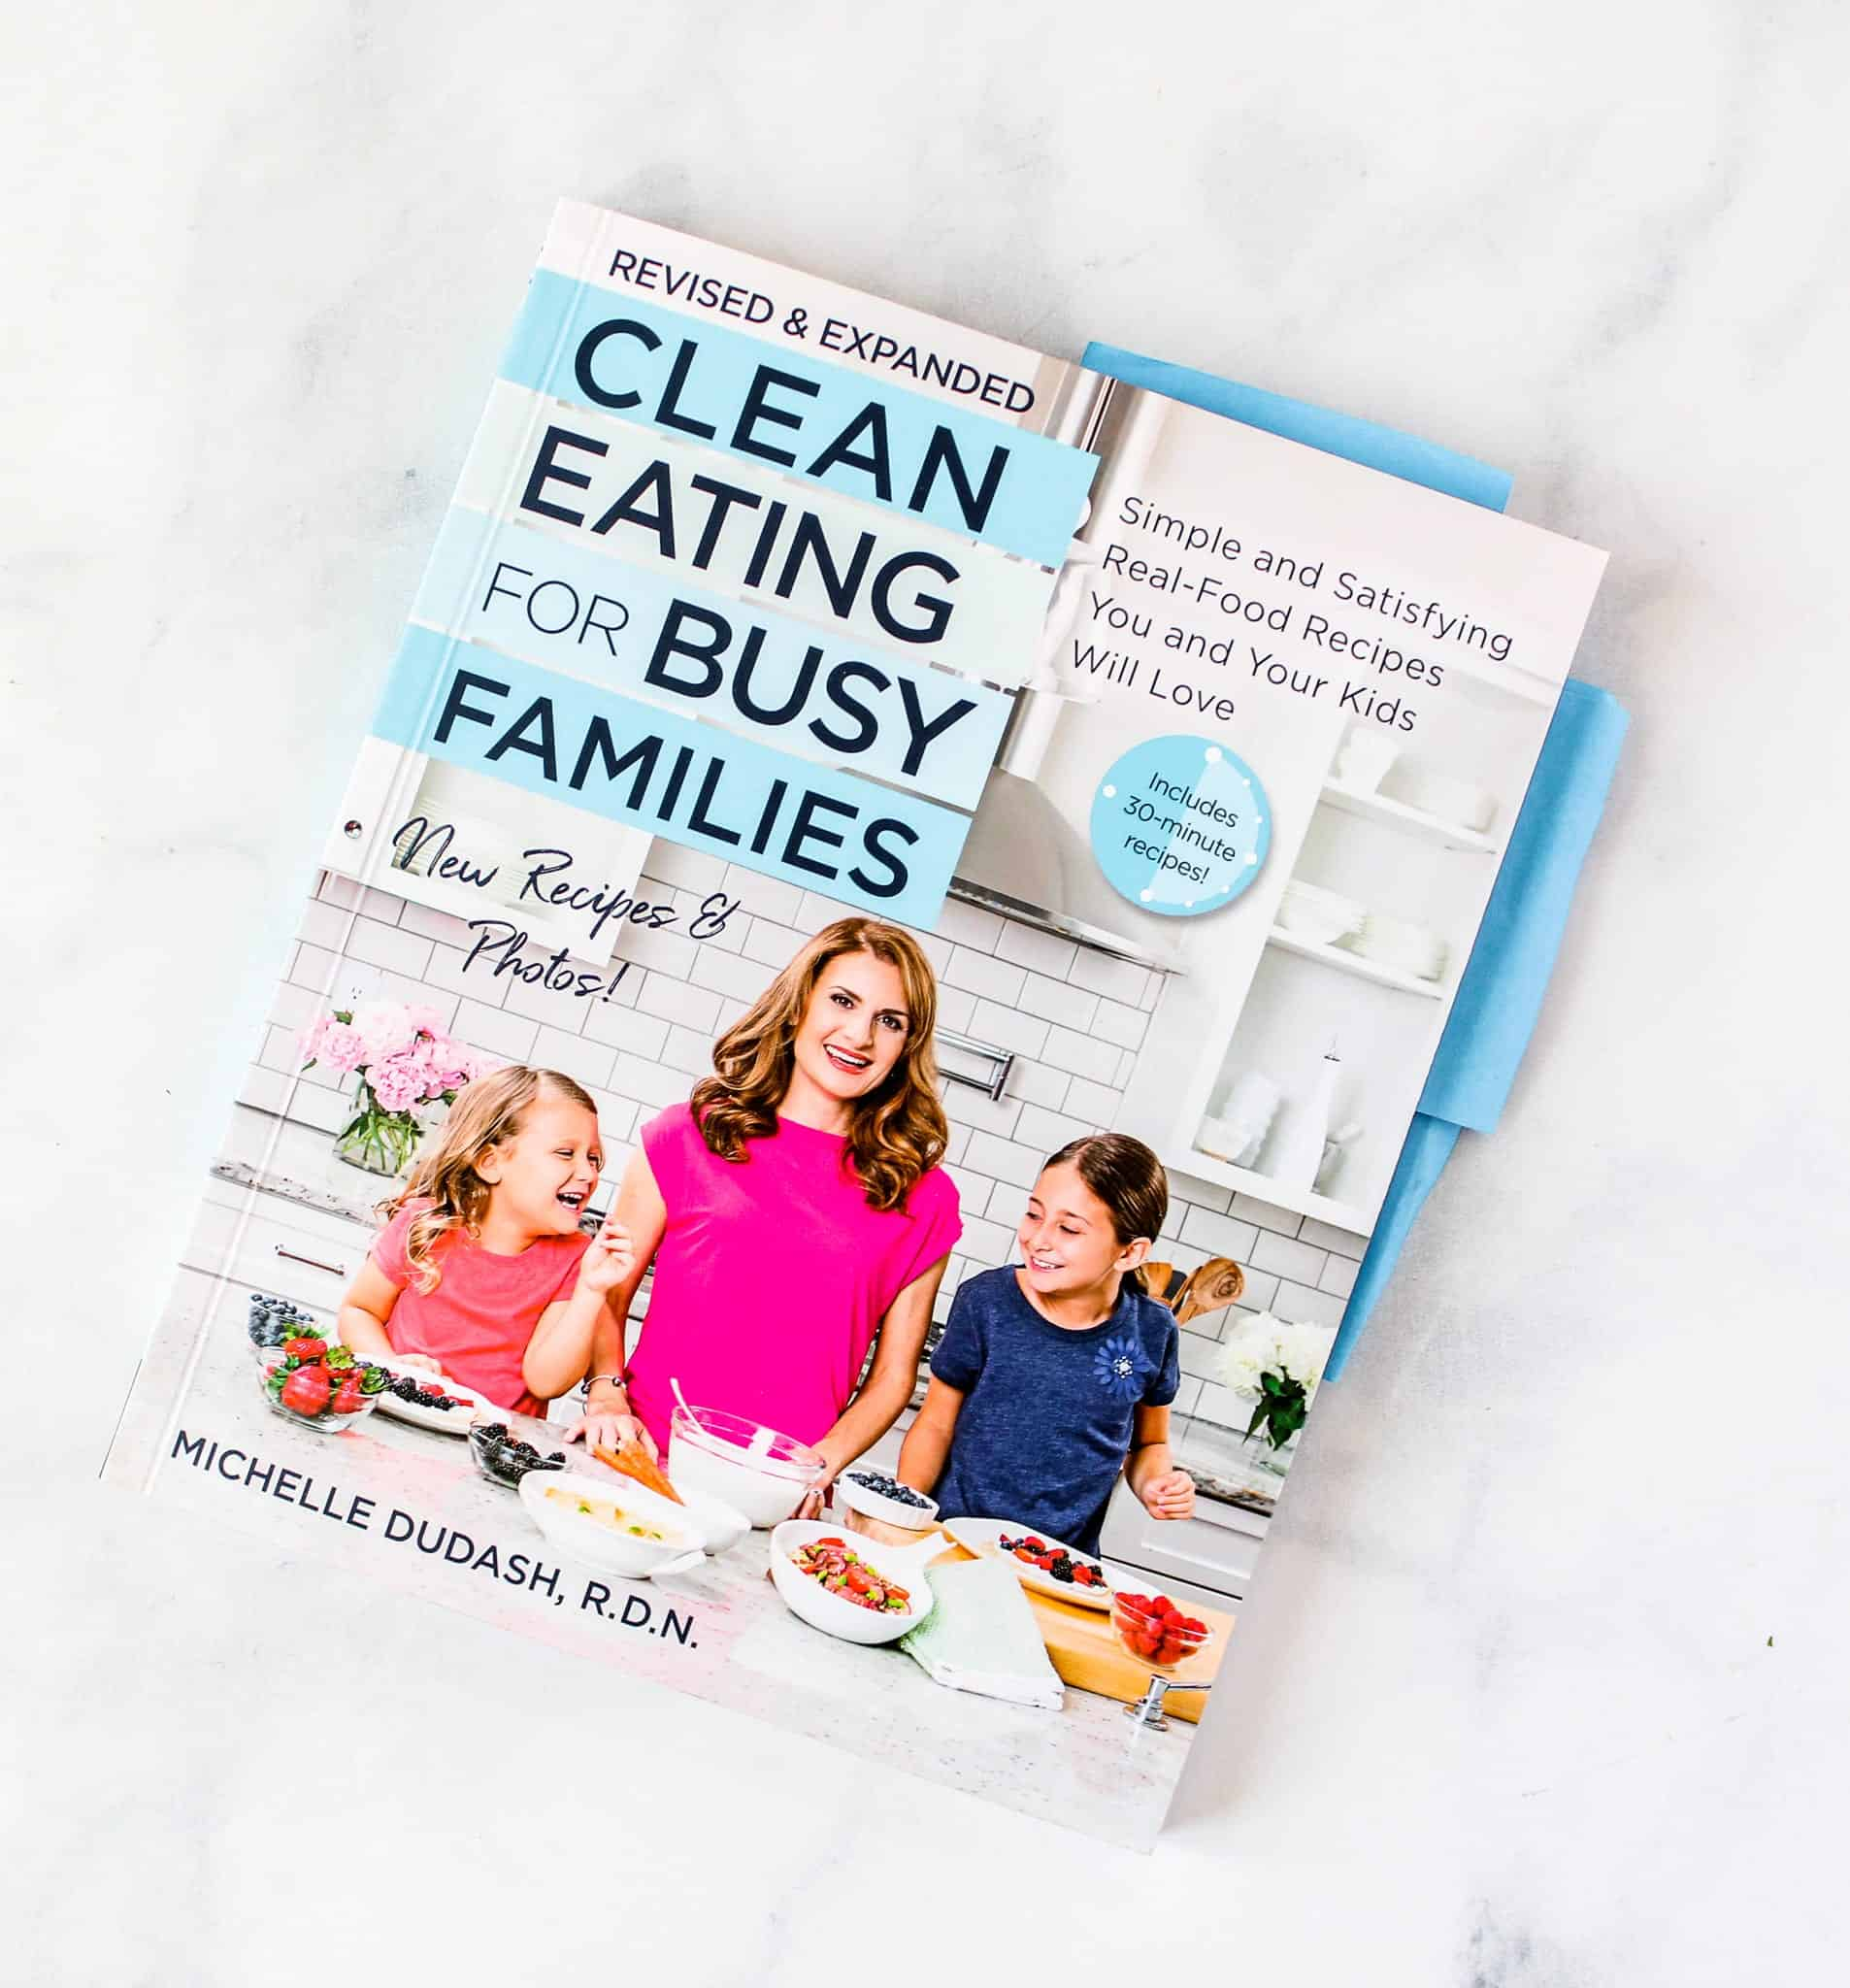 Clean Eating for Busy Families by Michelle Dudash